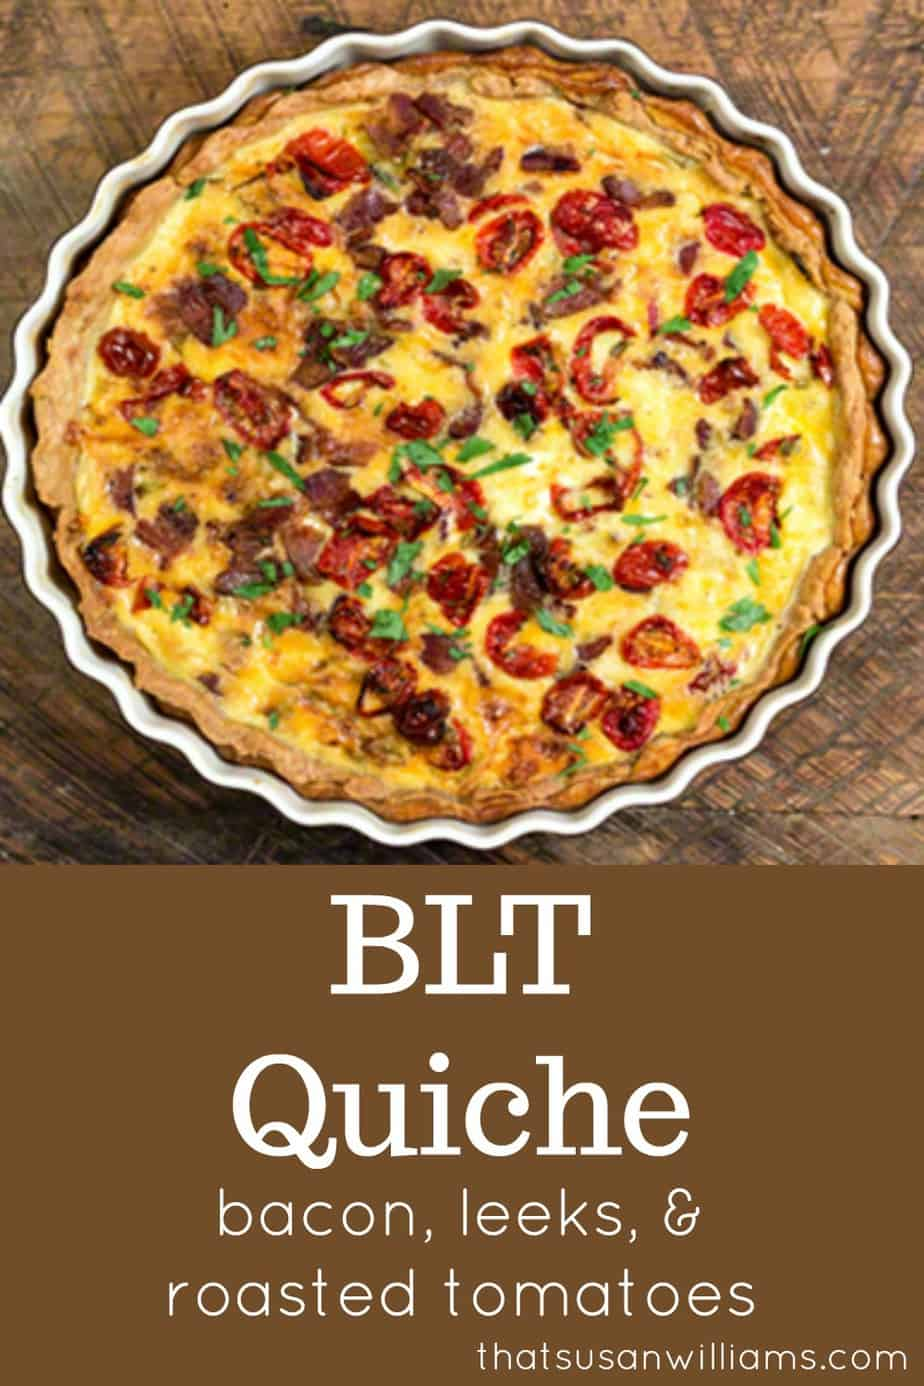 A delicious quiche with bacon, sautéed leeks and roasted tomatoes.  #quiche bacon #BLT #roastedtomatoes